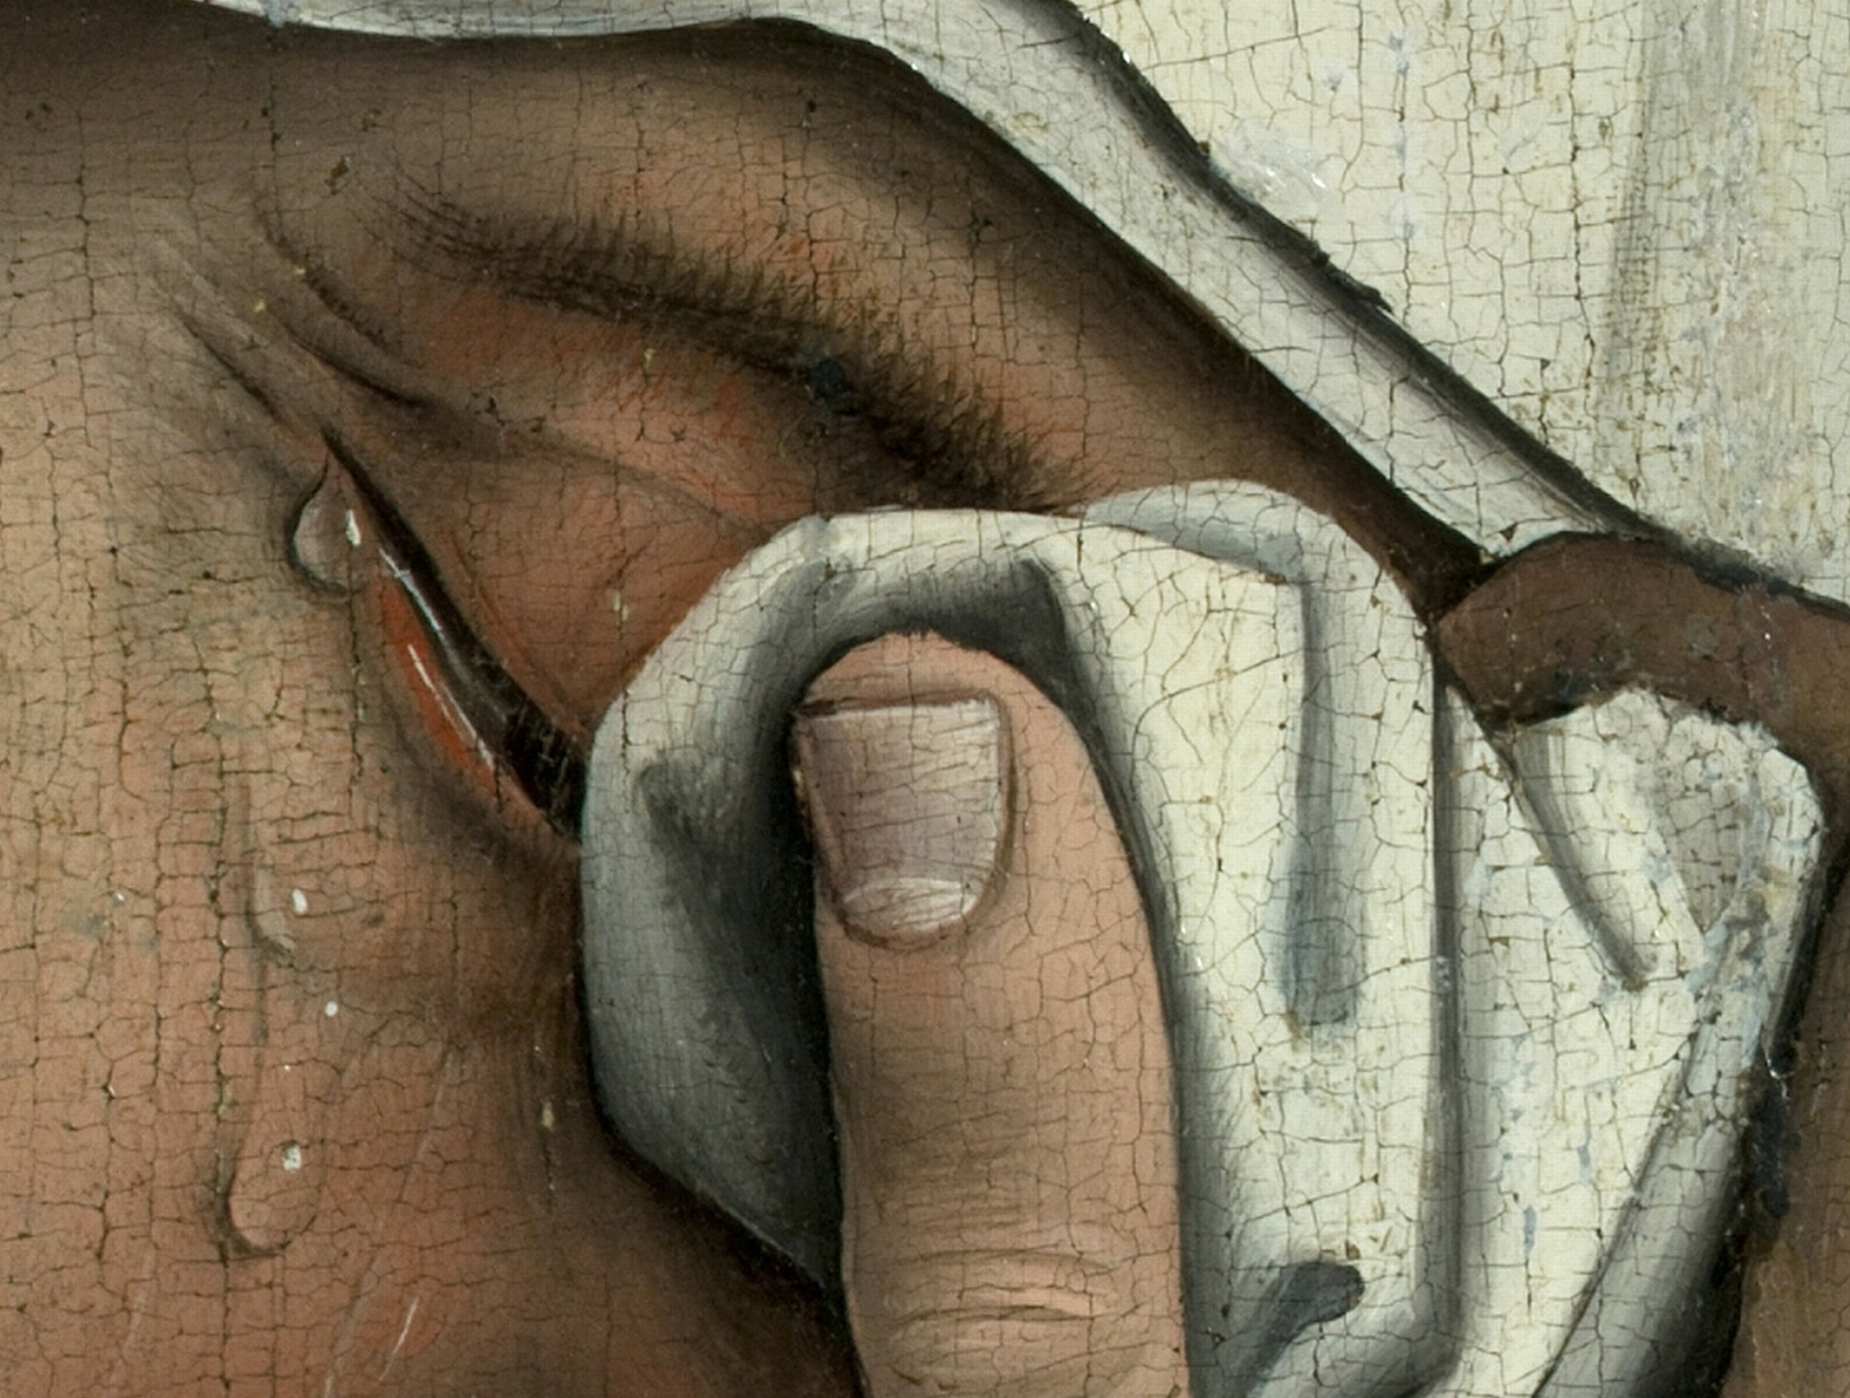 Rogier van der Weyden.  Mary's Tears, detail from Descent from the Cross  (circa 1399)   from Art in the Christian Tradition, a project of the Vanderbilt Divinity Library, Nashville, TN